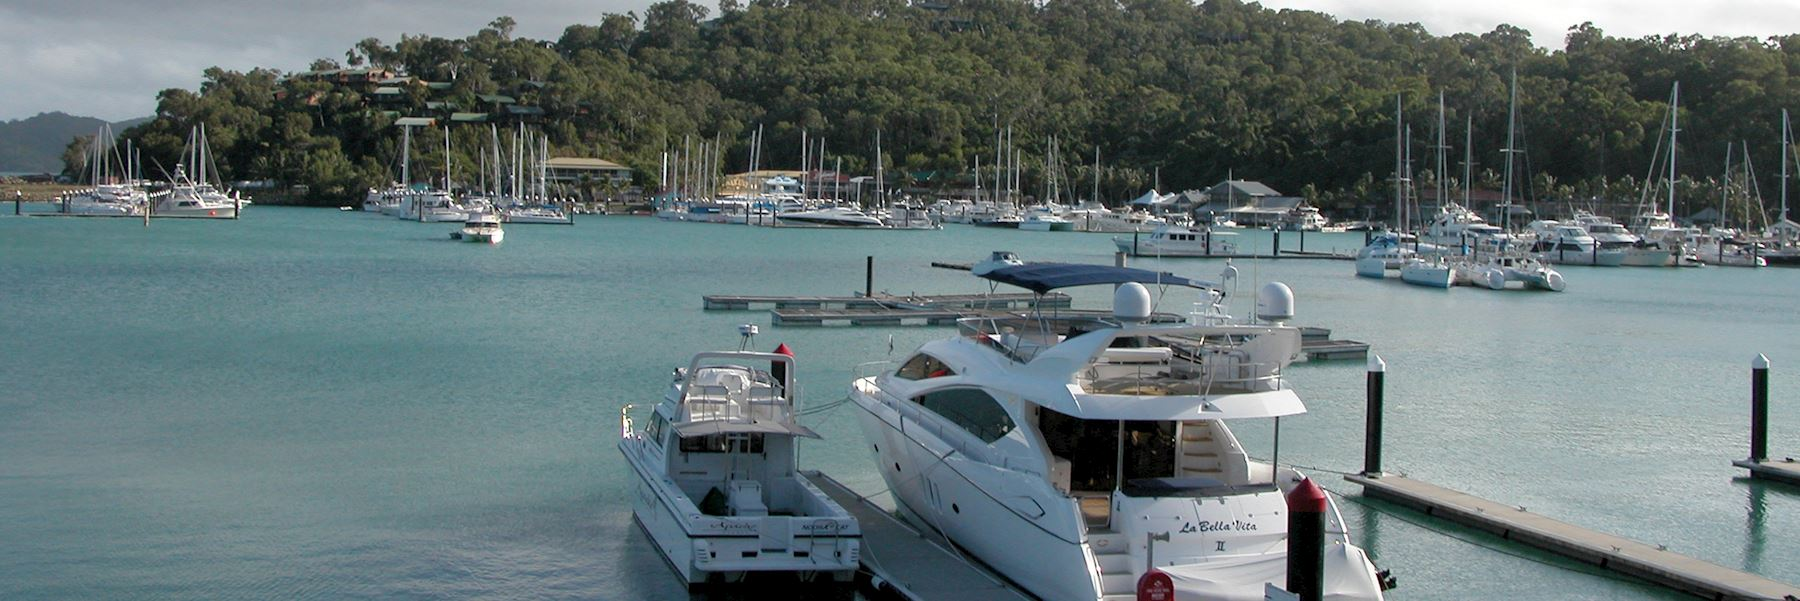 Best Time To Travel To Hamilton Island